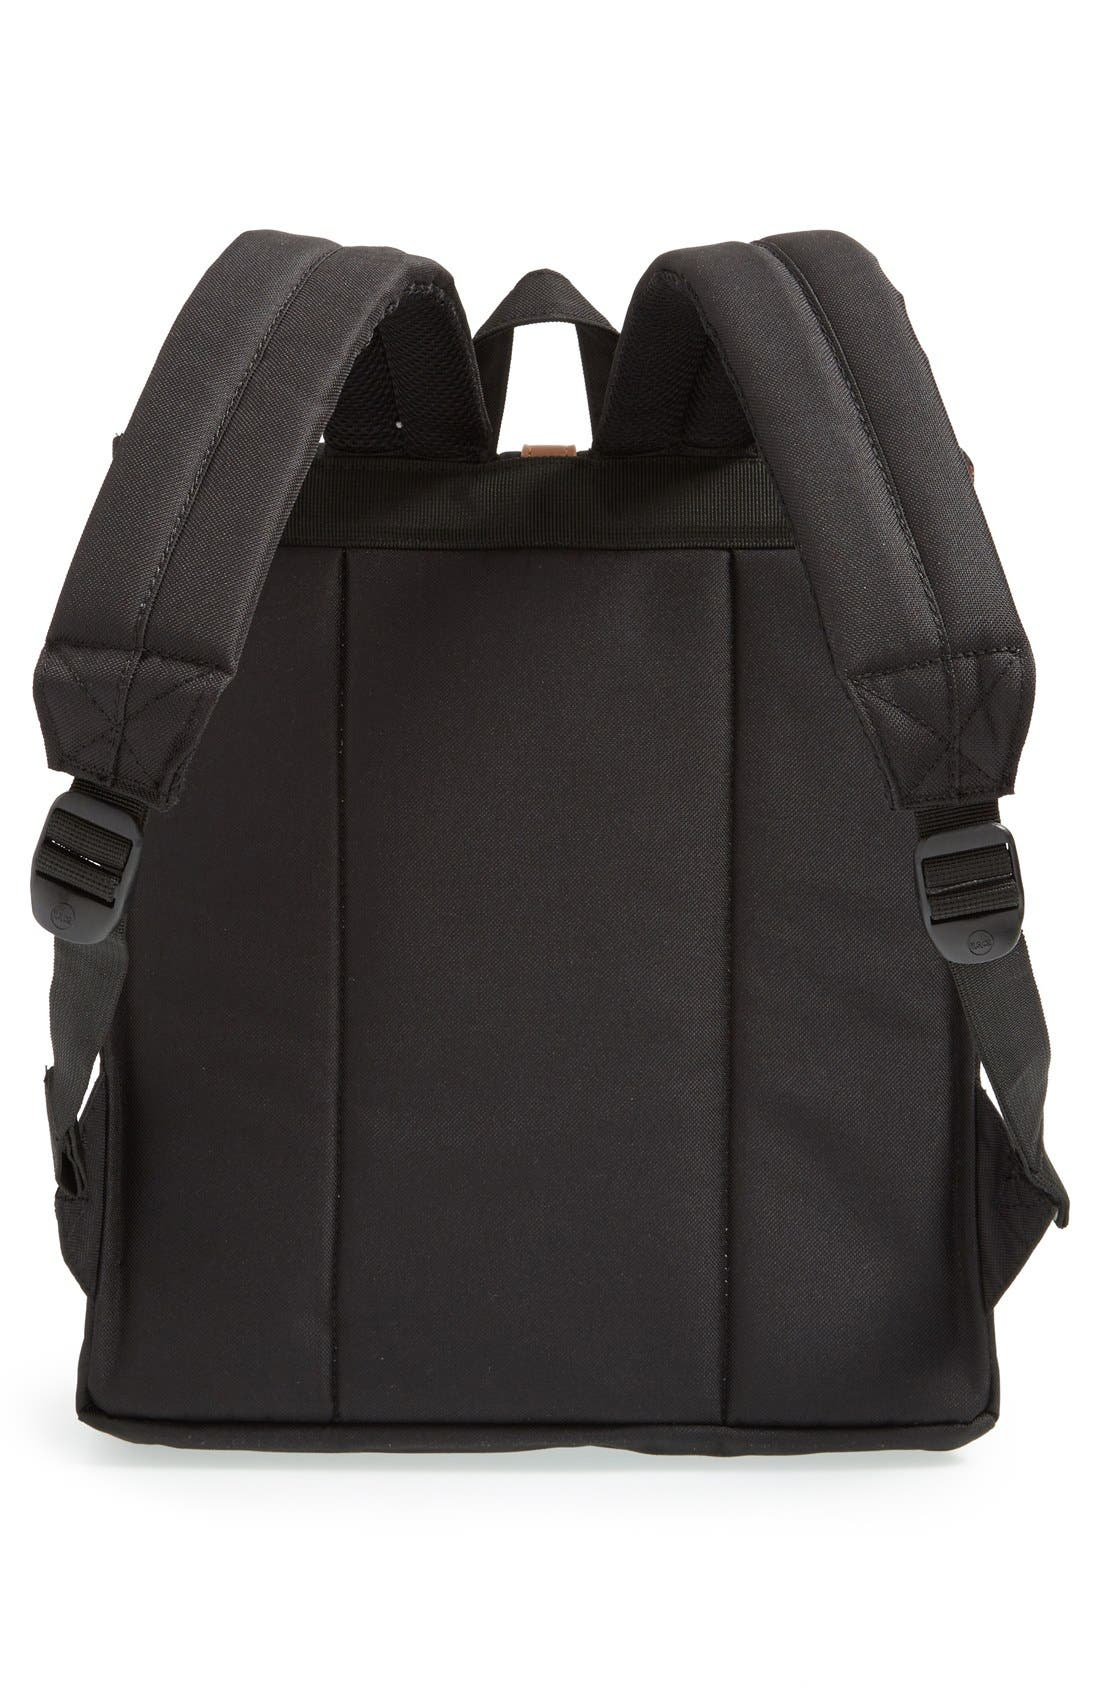 Alternate Image 3  - Herschel Supply Co. 'City - Mid Volume' Backpack